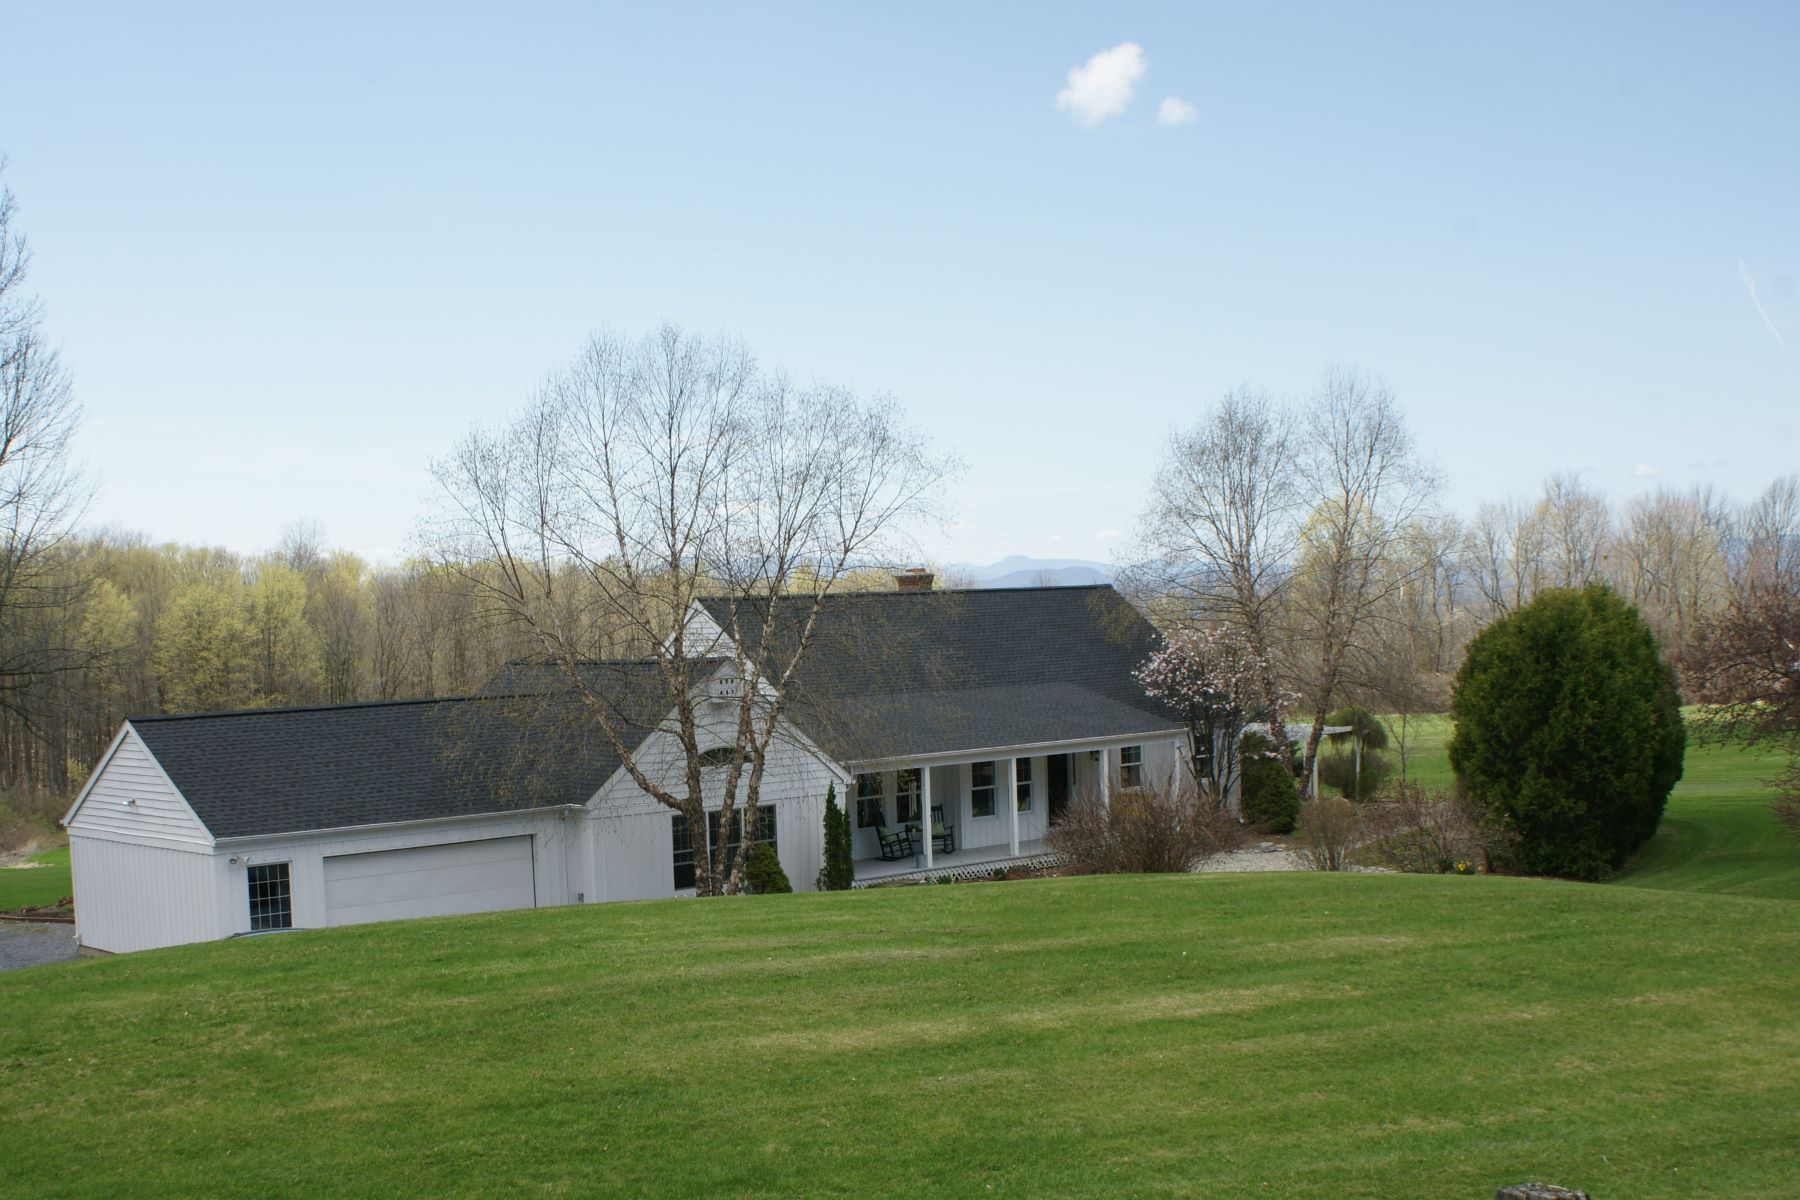 Single Family Homes for Sale at Complete Vermont homestead experience 38 Stone Meadow Lane Ferrisburgh, Vermont 05456 United States